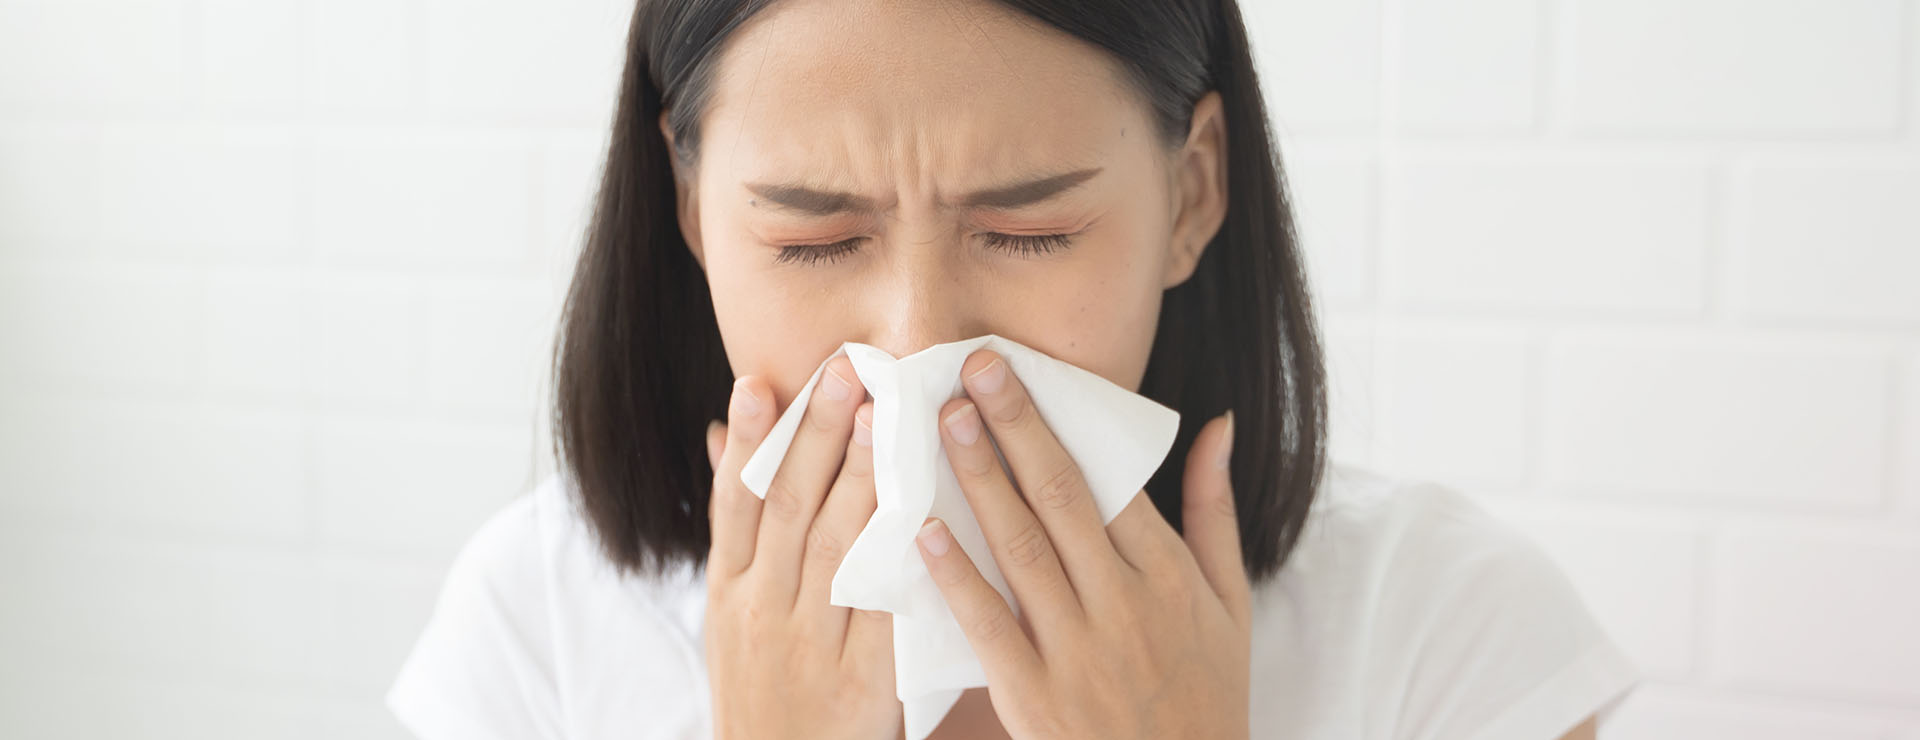 Flu shots may cause allergic reactions